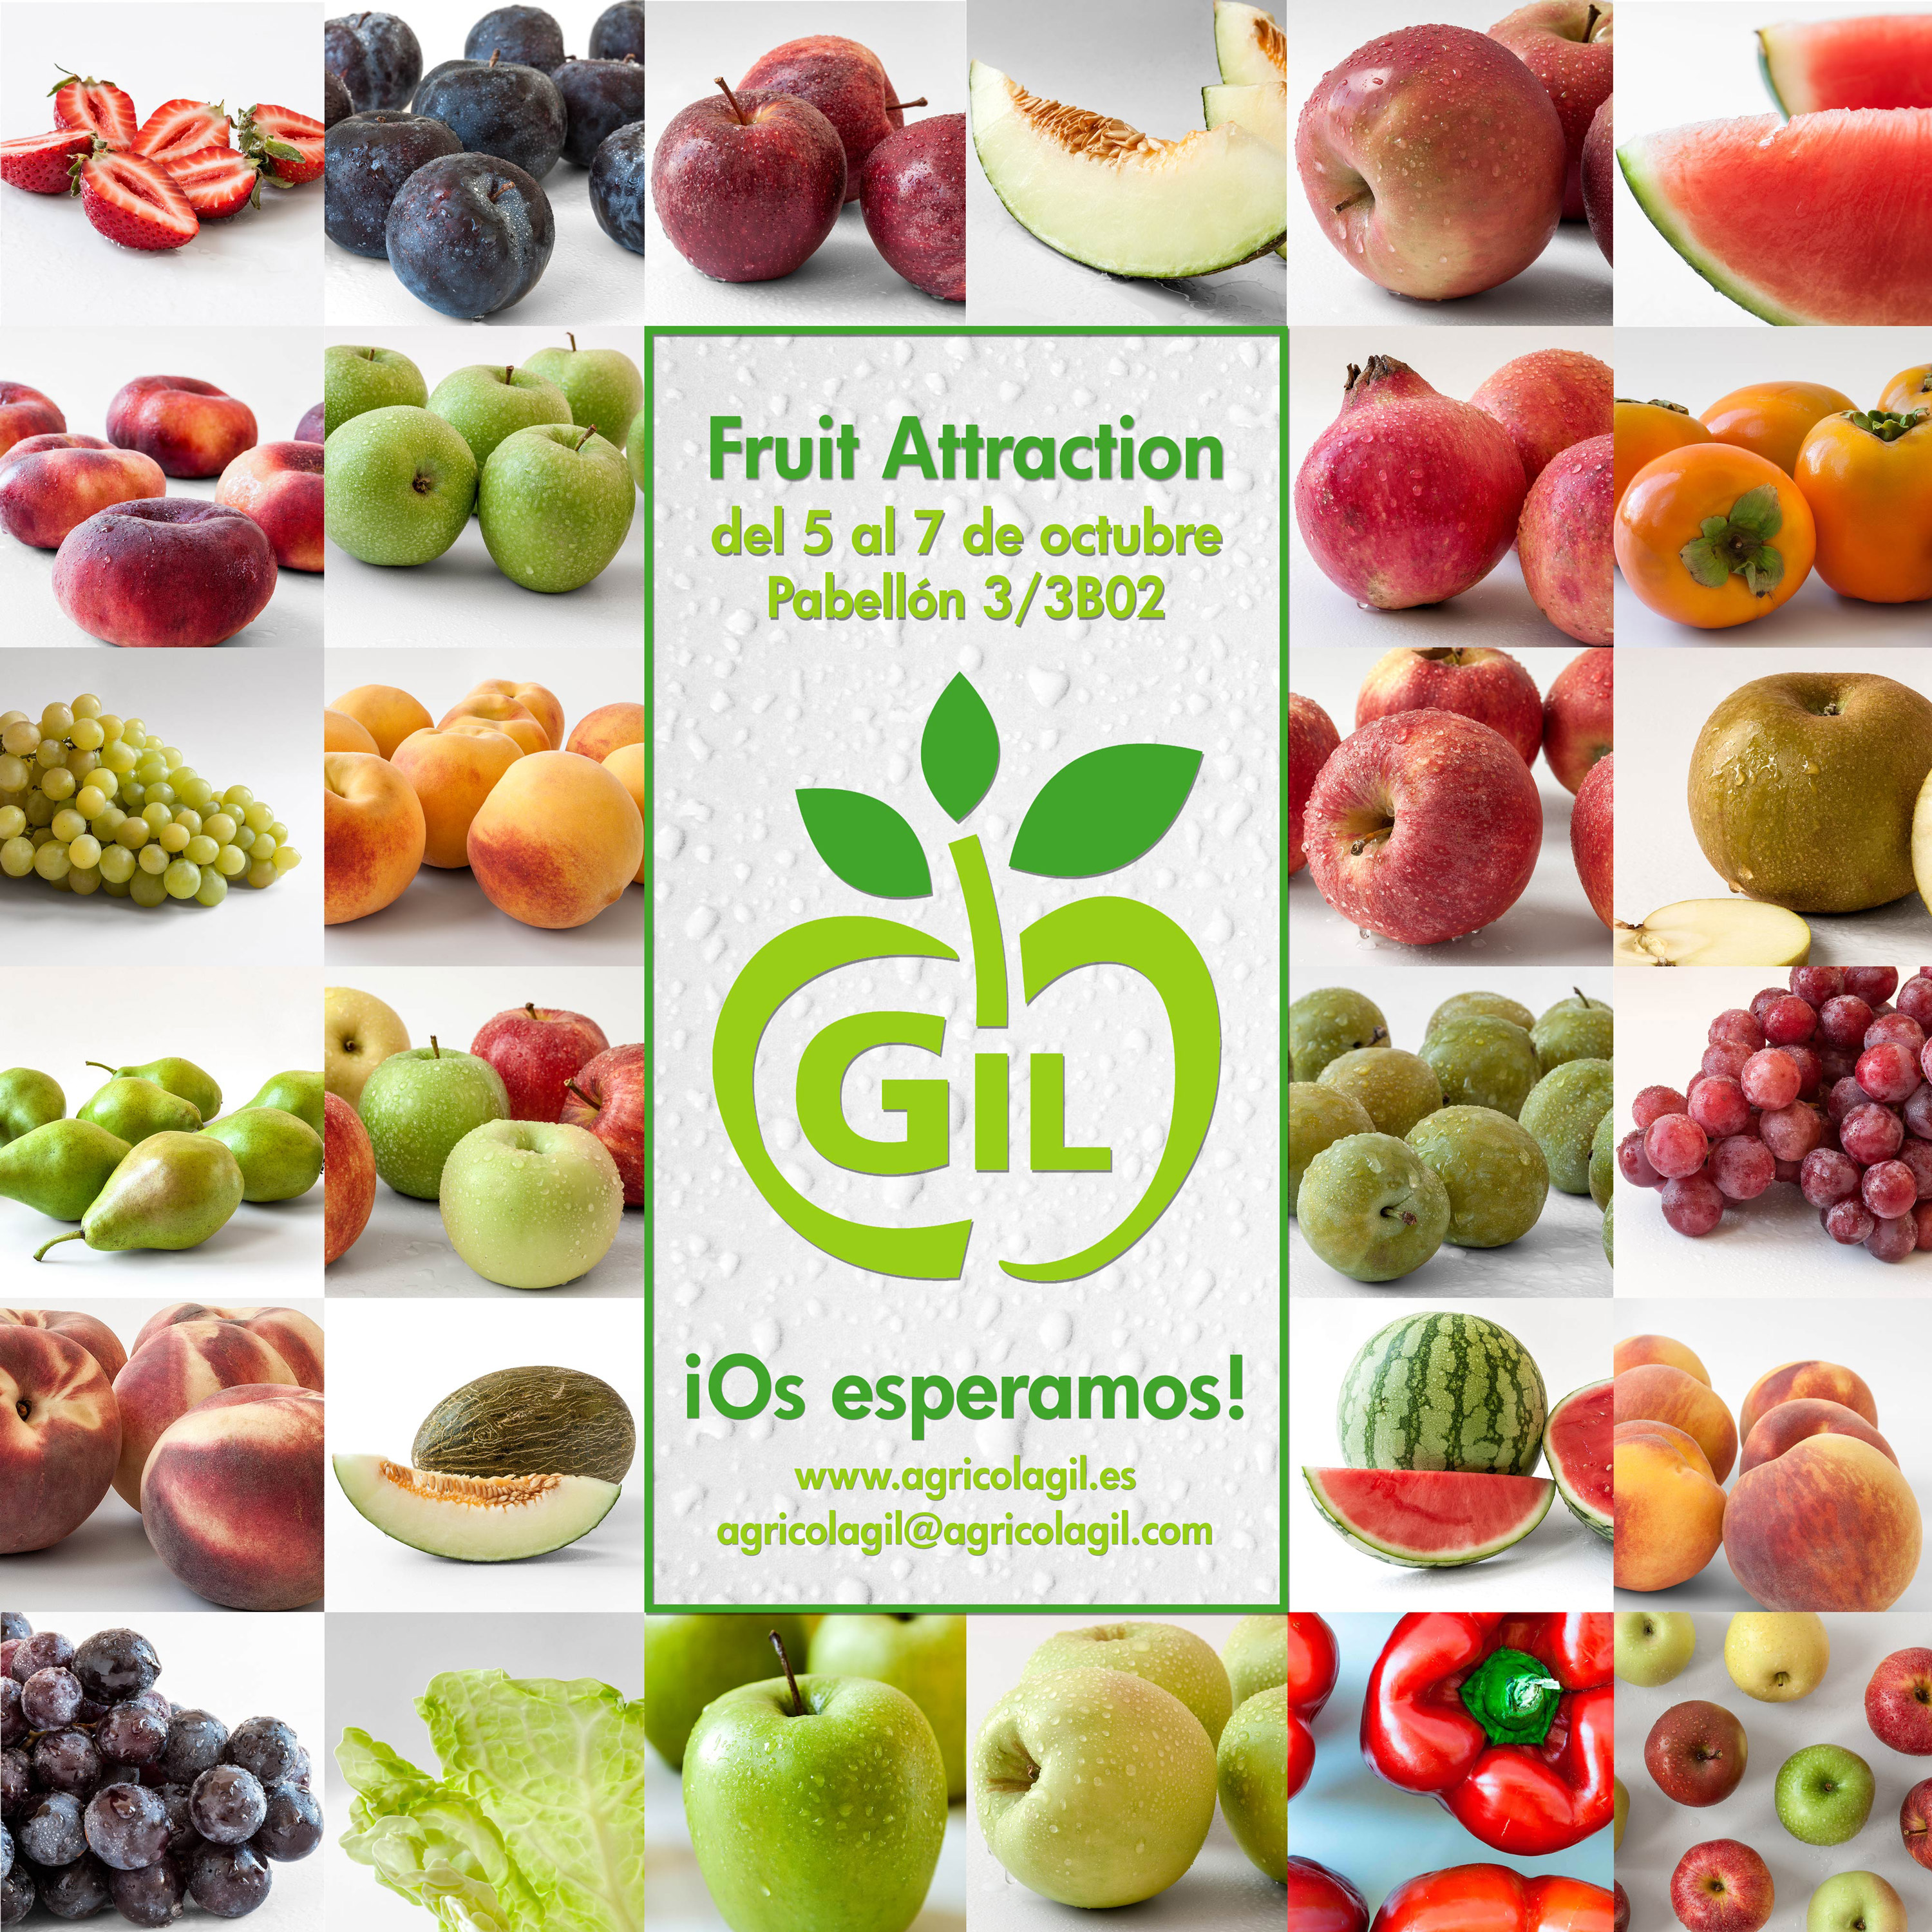 FRUIT ATTRACTION 2016 AGRICOLA GIL